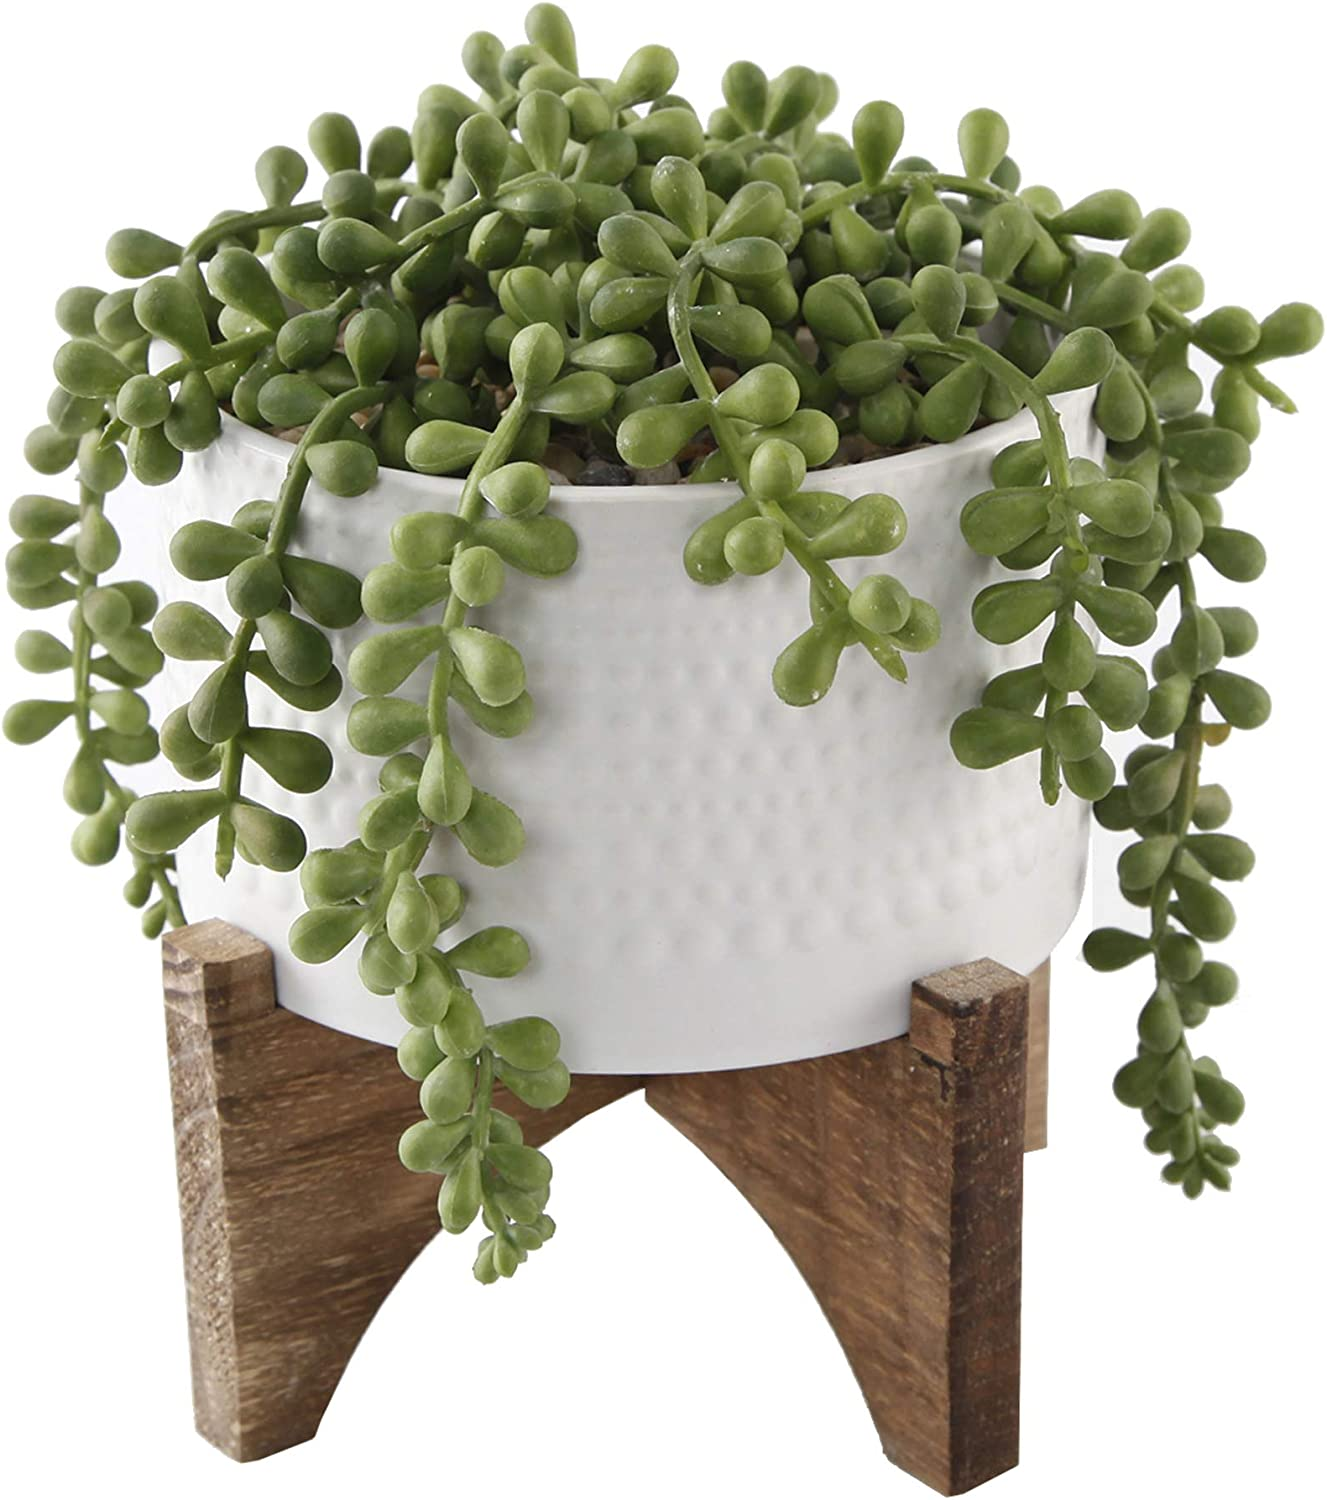 New Max 80% OFF Orleans Mall Flora Bunda Artificial Succulent Faux Plant String Pea 5 of inch